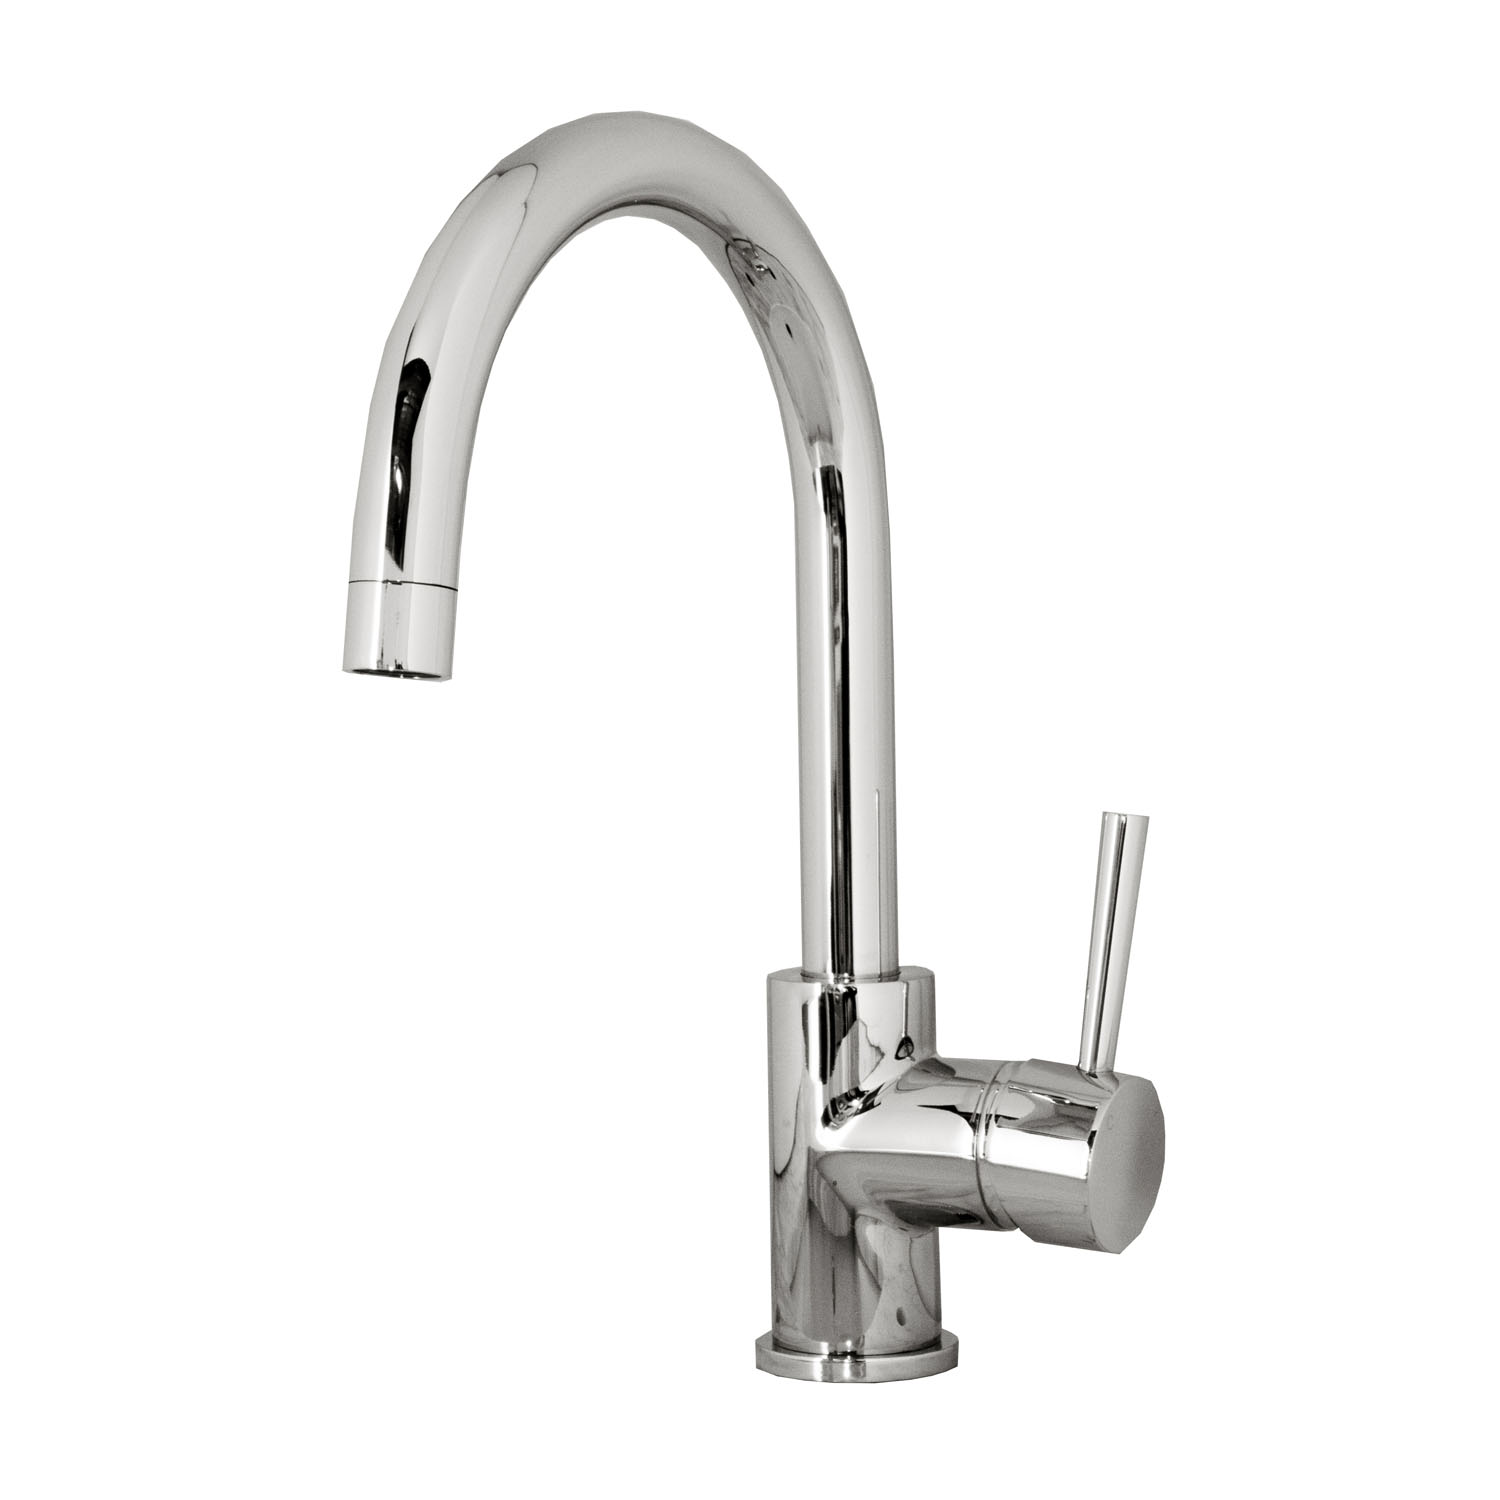 Keplen 801 Single Hole Kitchen Faucet - PSK-801-PC - Kitchen Faucets -  Virtu USA